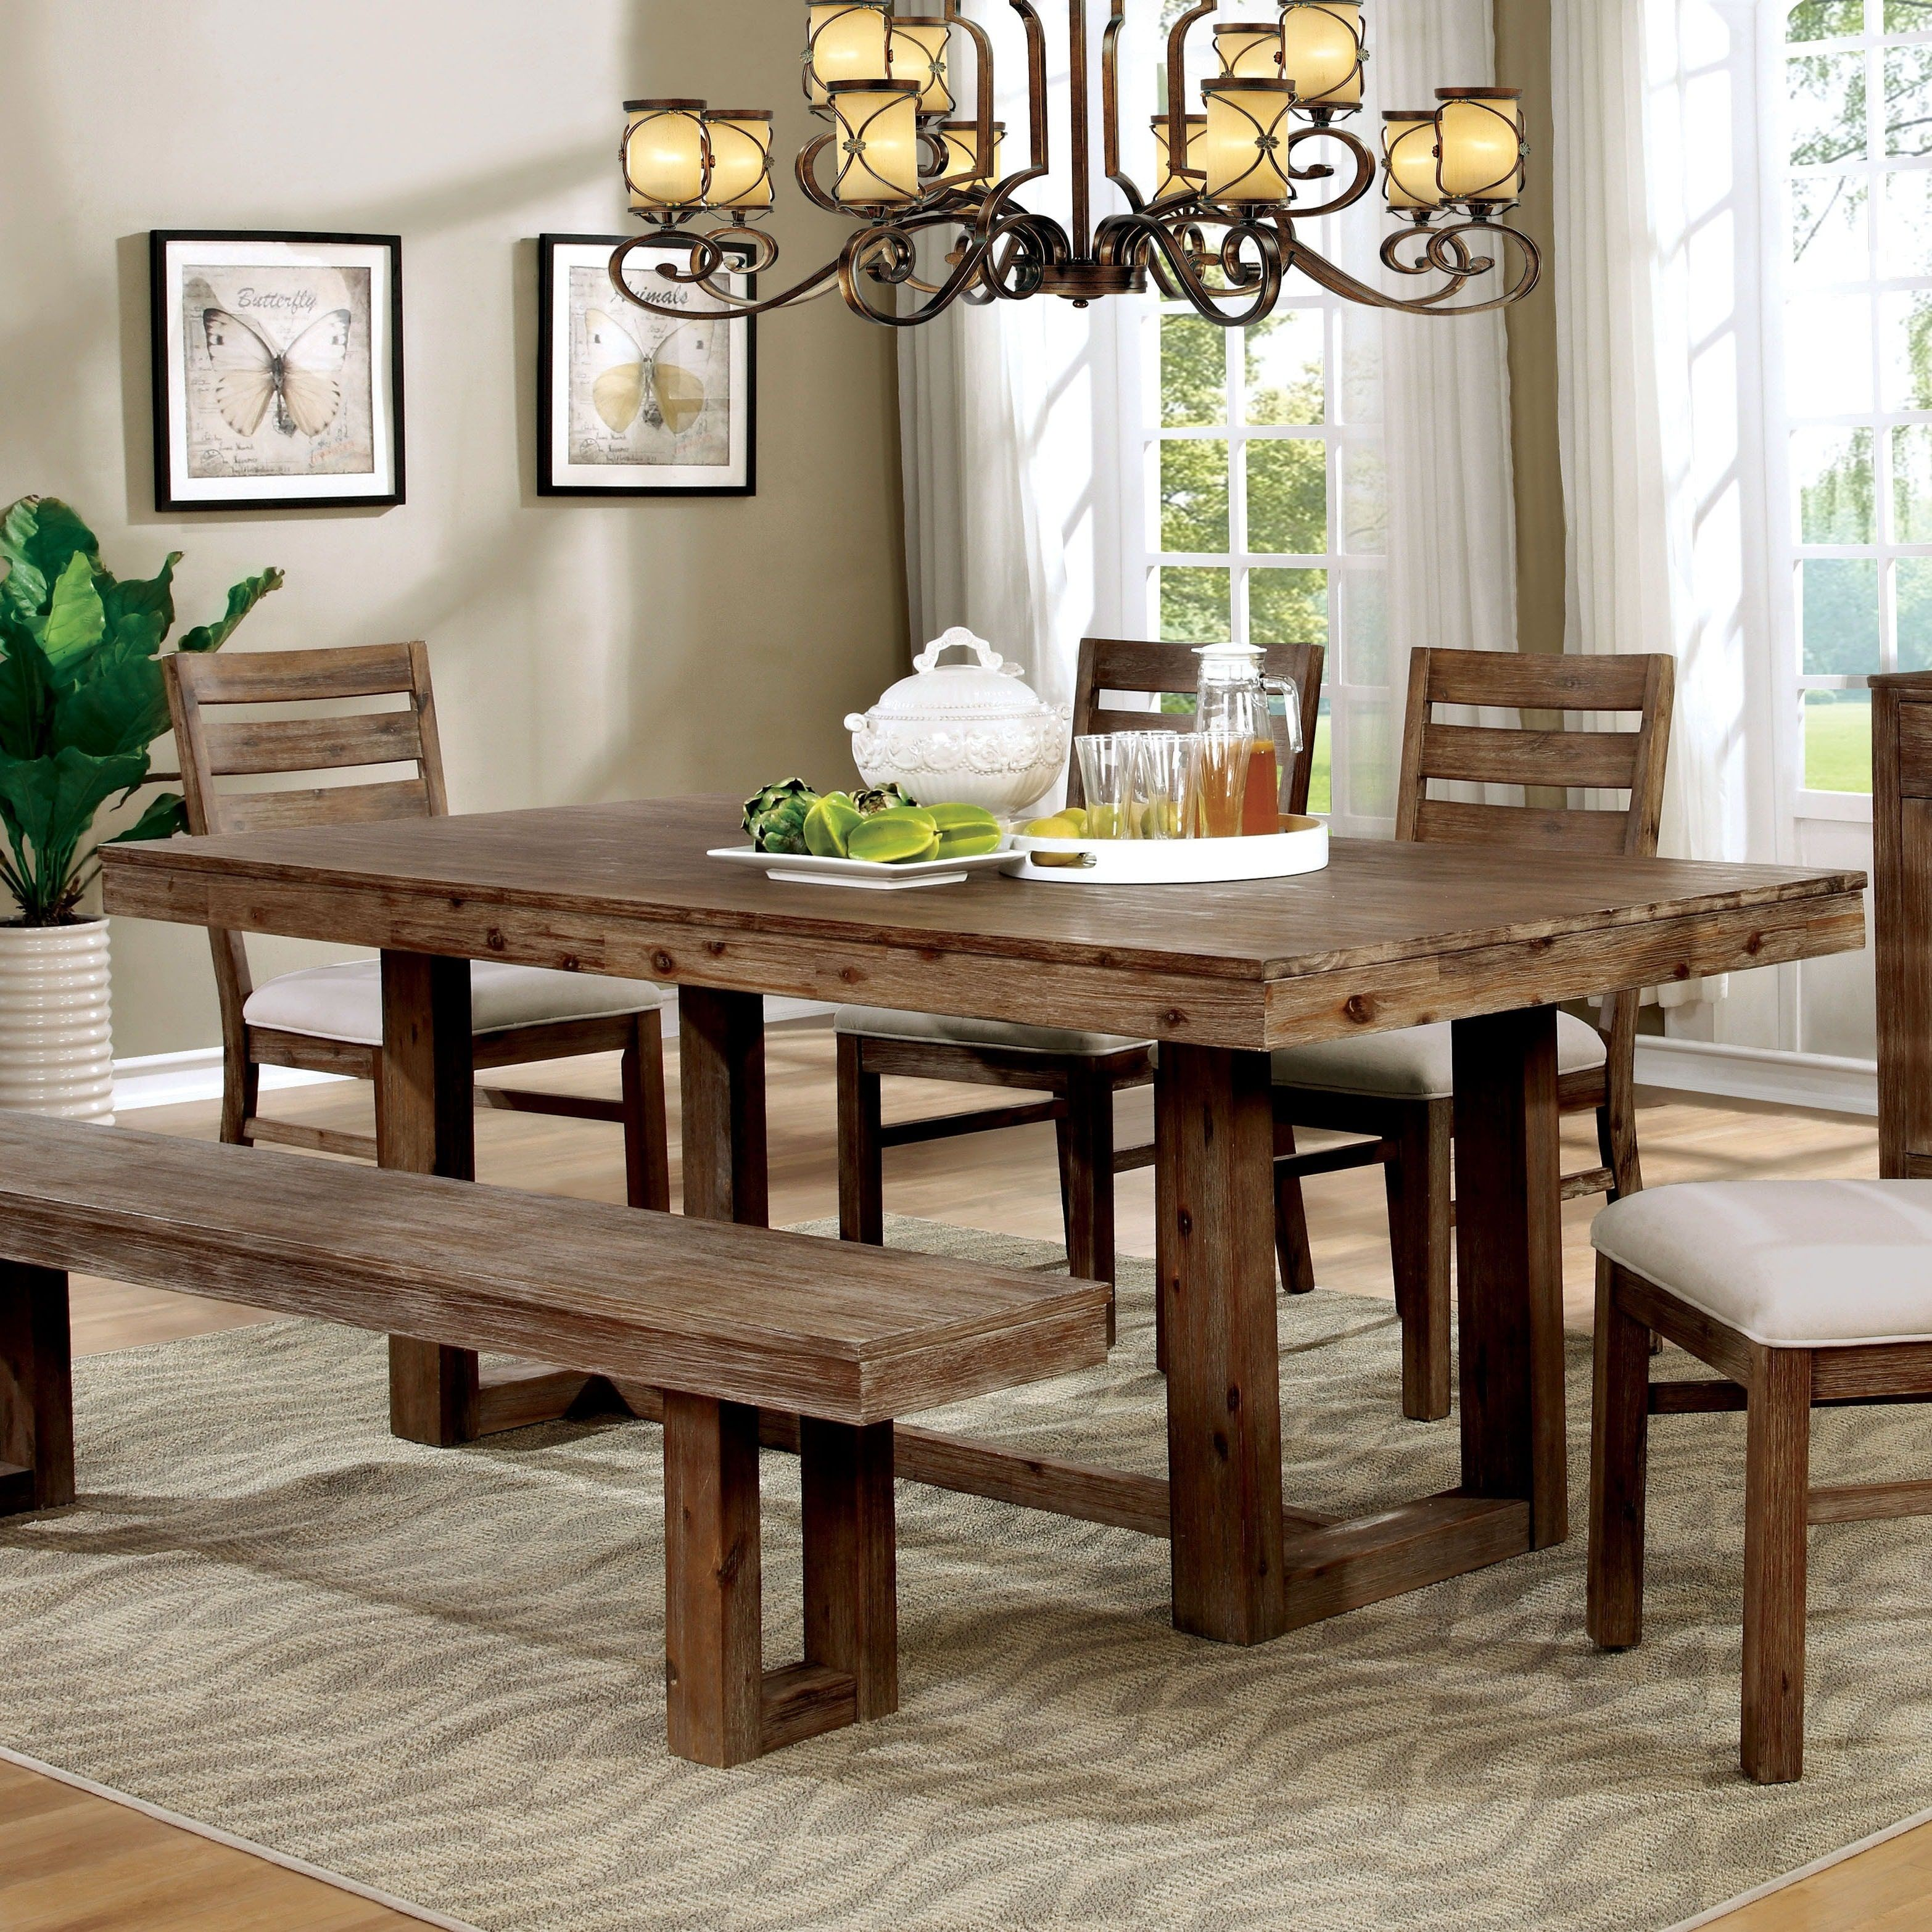 Furniture Of America Treville Country Farmhouse Natural Tone Plank Delectable Plank Dining Room Table Design Decoration